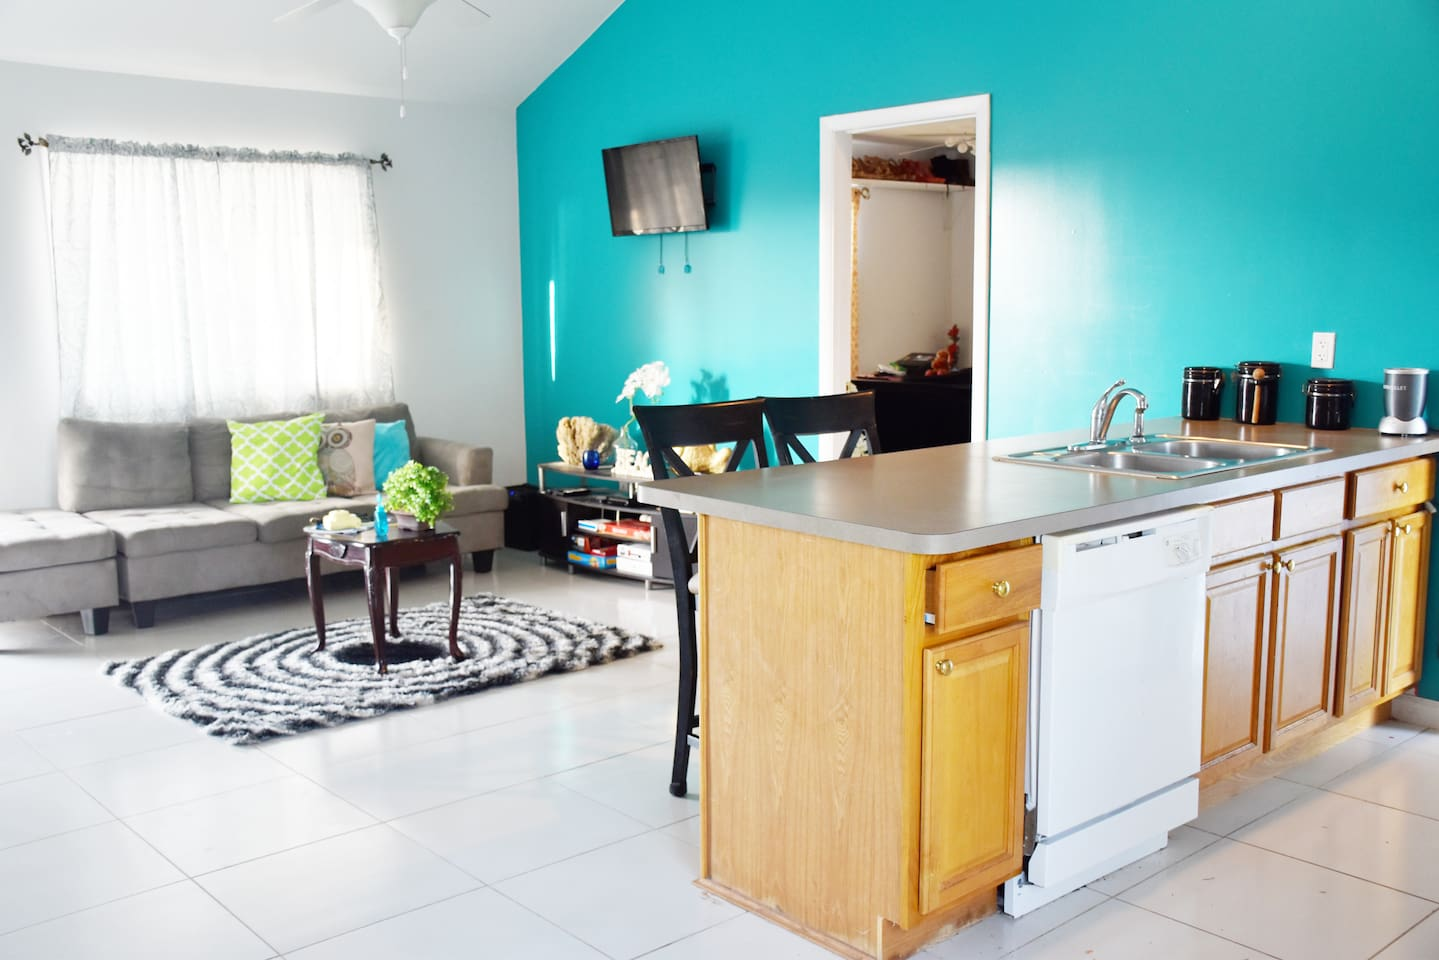 TURQUOISE HOUSE - 1 bed/1 bath - Houses for Rent in Caicos Islands ...